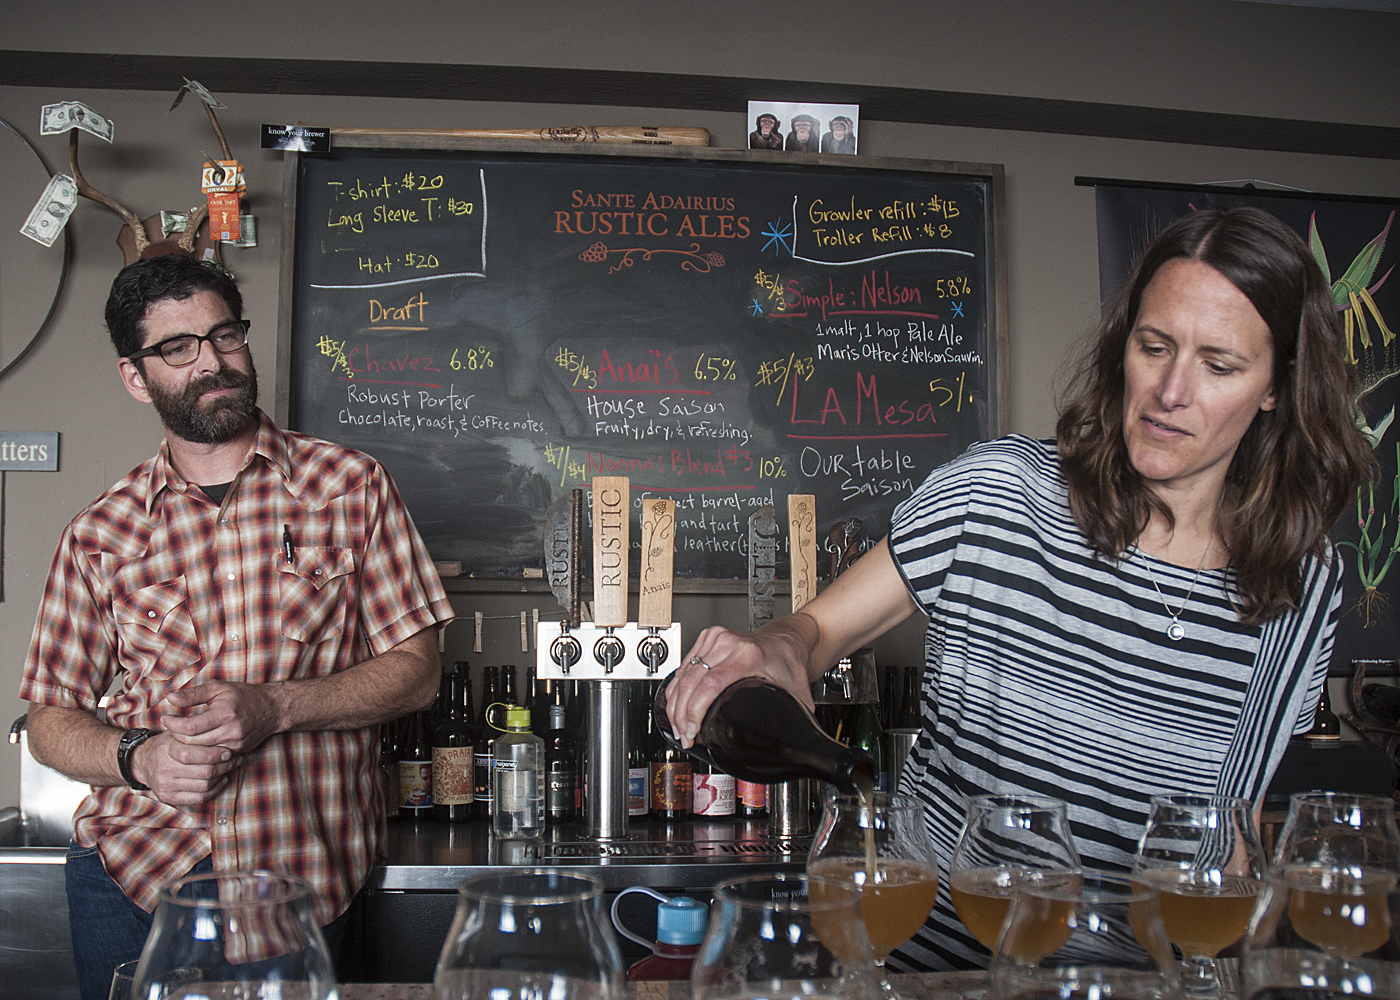 Tim Clifford and Adair Paterno of Sante Adairius Rustic Ales in Capitola, CA